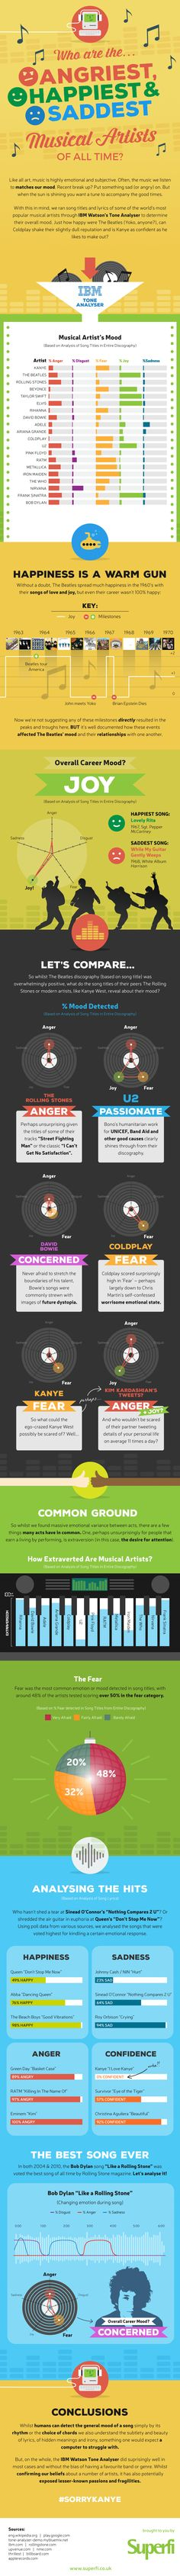 Who Are the Happiest, Saddest And Angriest Music Artists of All Time? #Infographic #Music